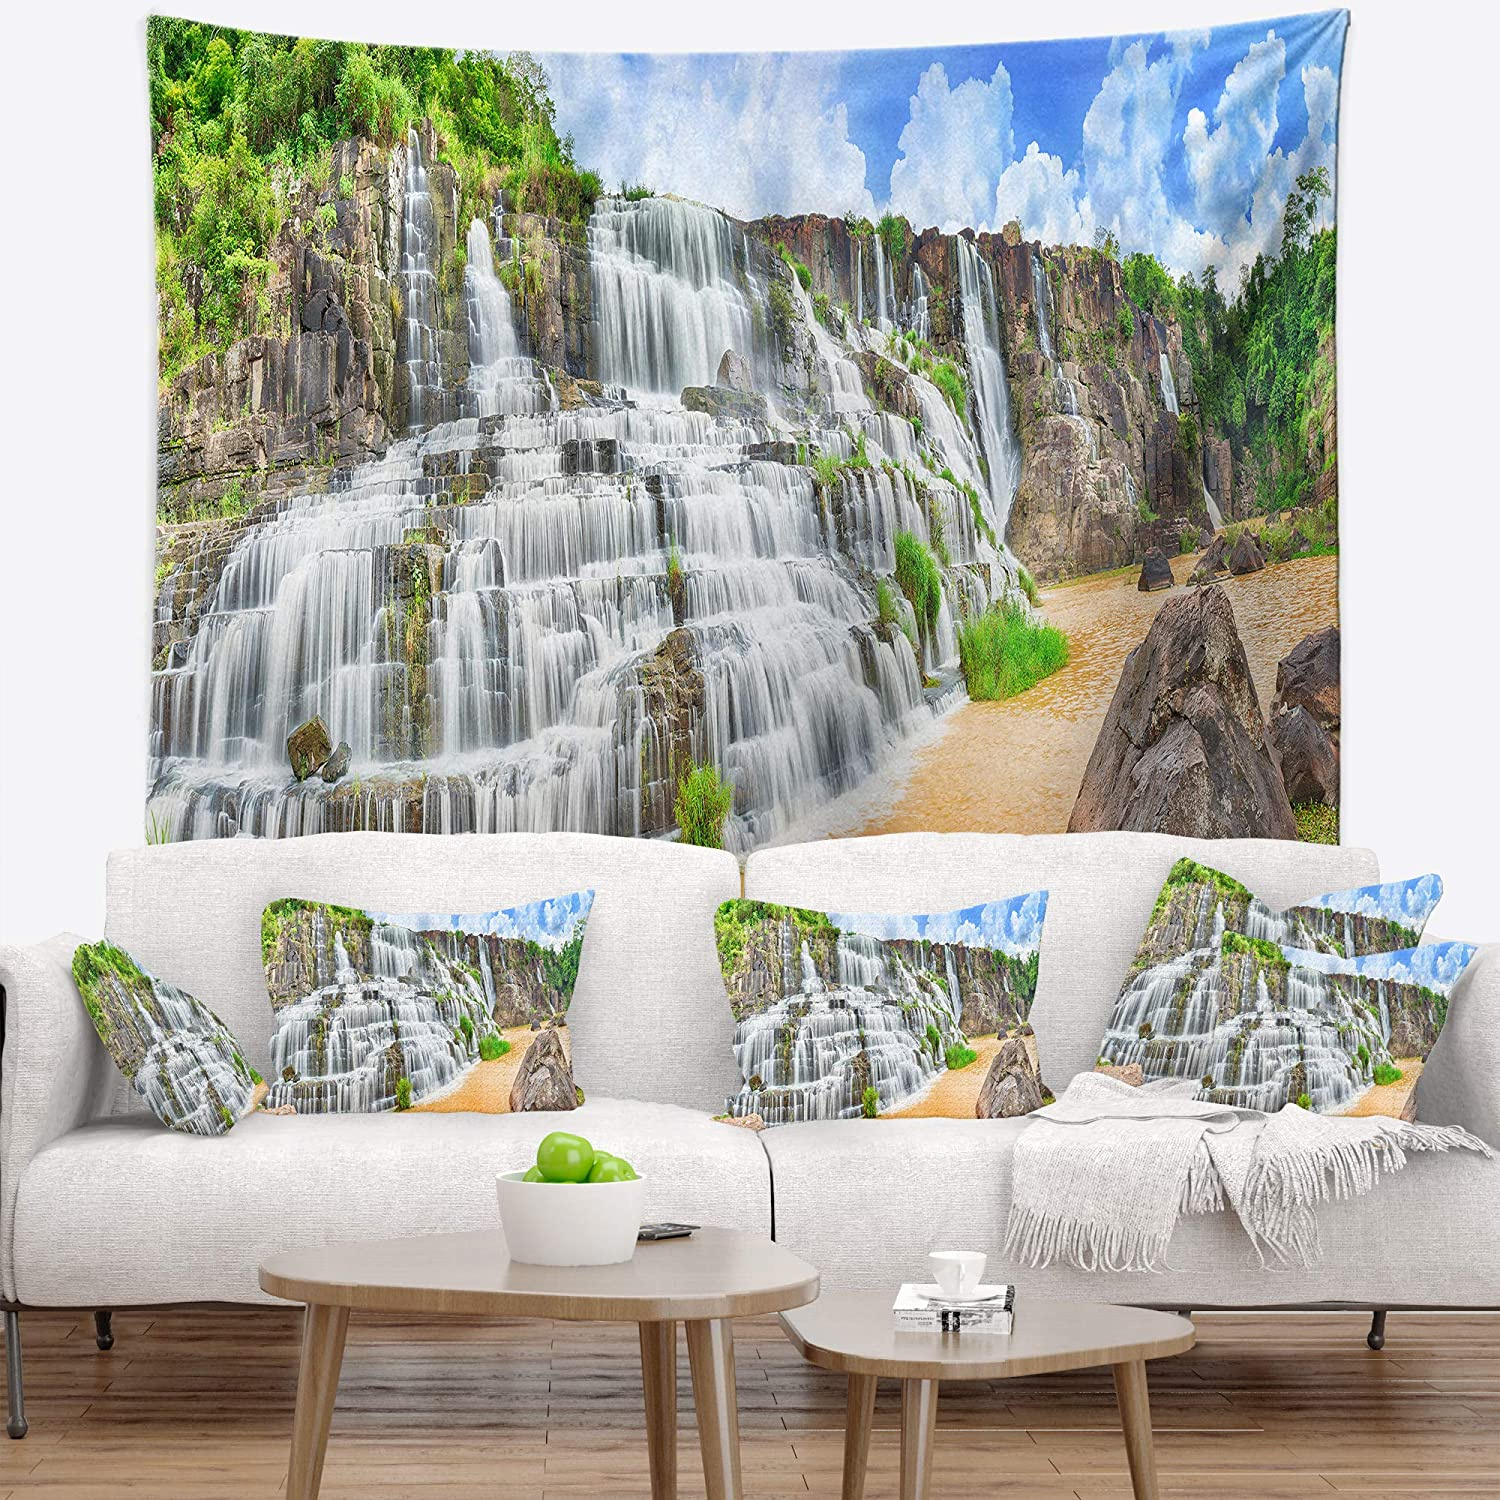 80 x 68 Created On Lightweight Polyester Fabric Designart TAP6484-80-68  Pongour Waterfall Photography Blanket D/écor Art for Home and Office Wall Tapestry x Large